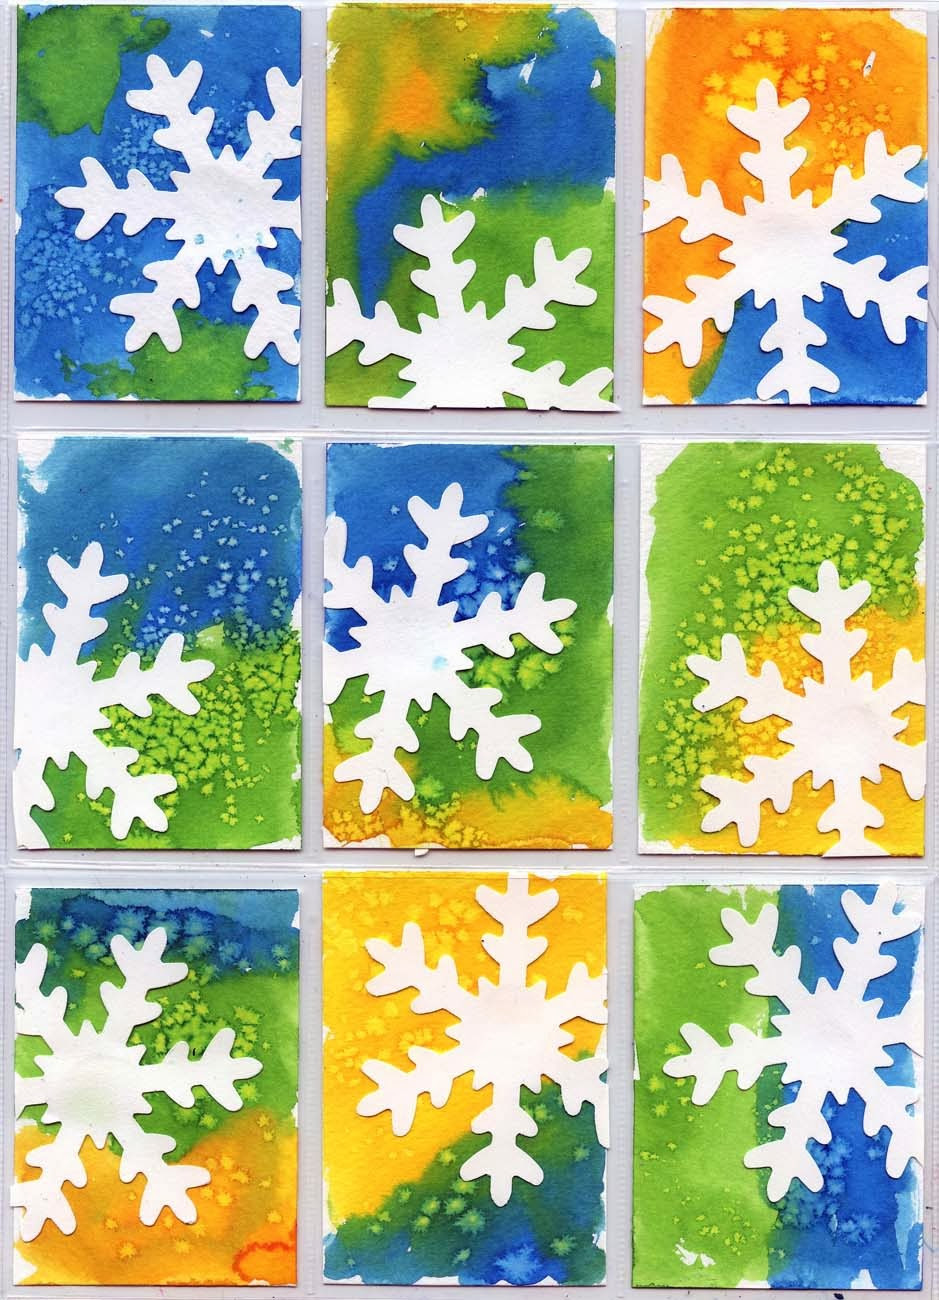 Best ideas about Winter Art Projects For Kids . Save or Pin Snowflake ATC Art Projects for Kids Now.